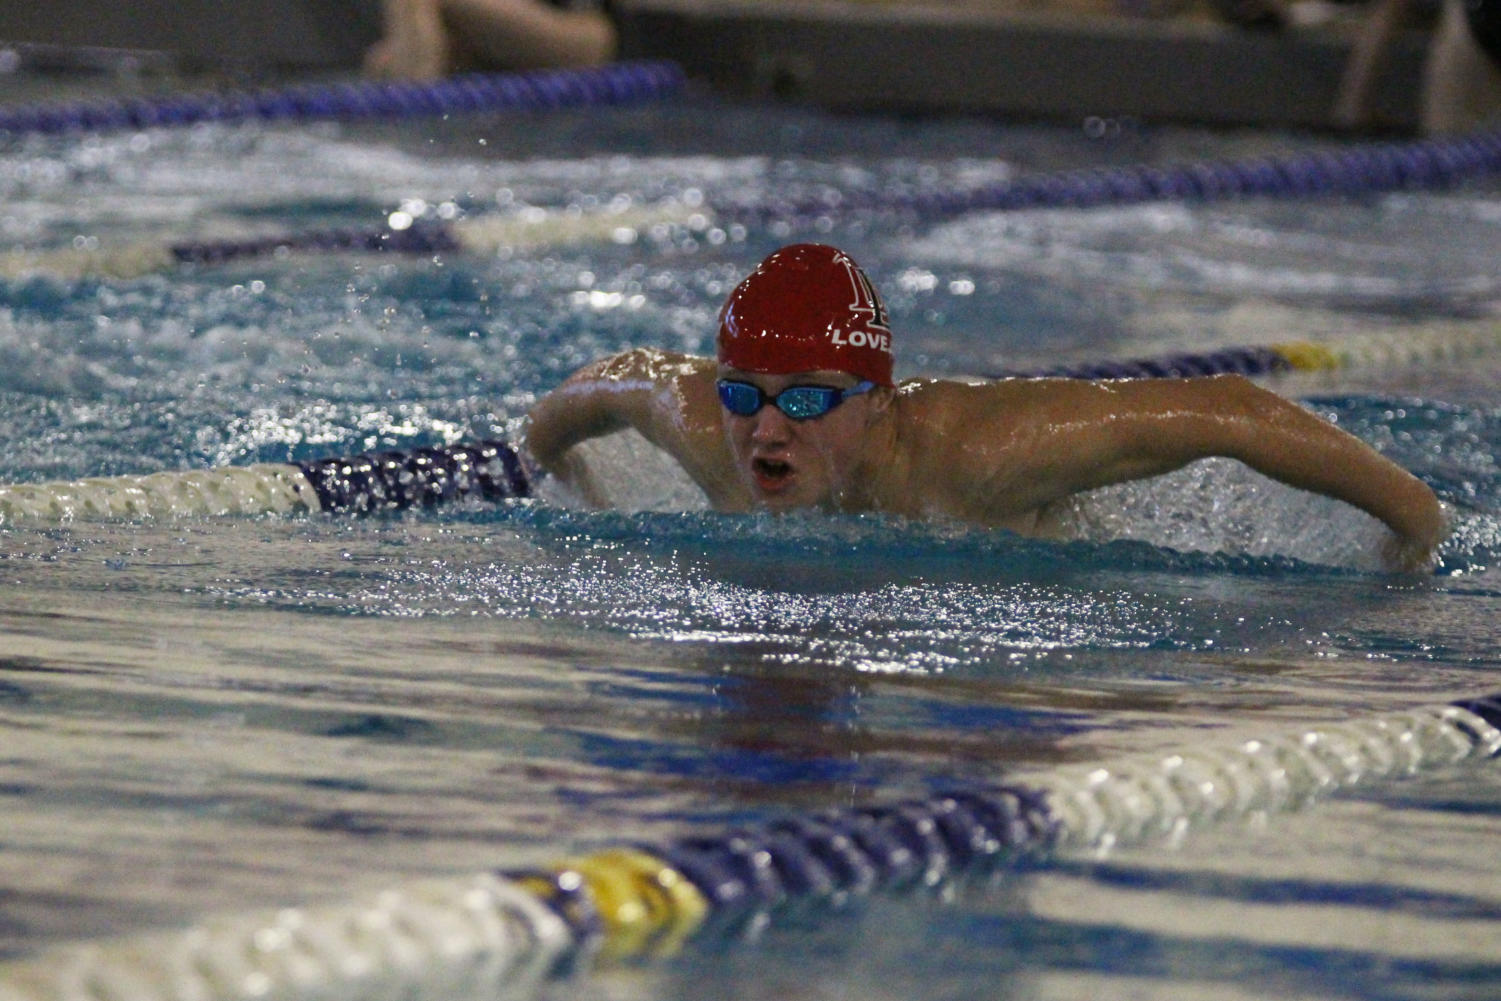 The swim team set seven school records at their meet on Nov. 17.